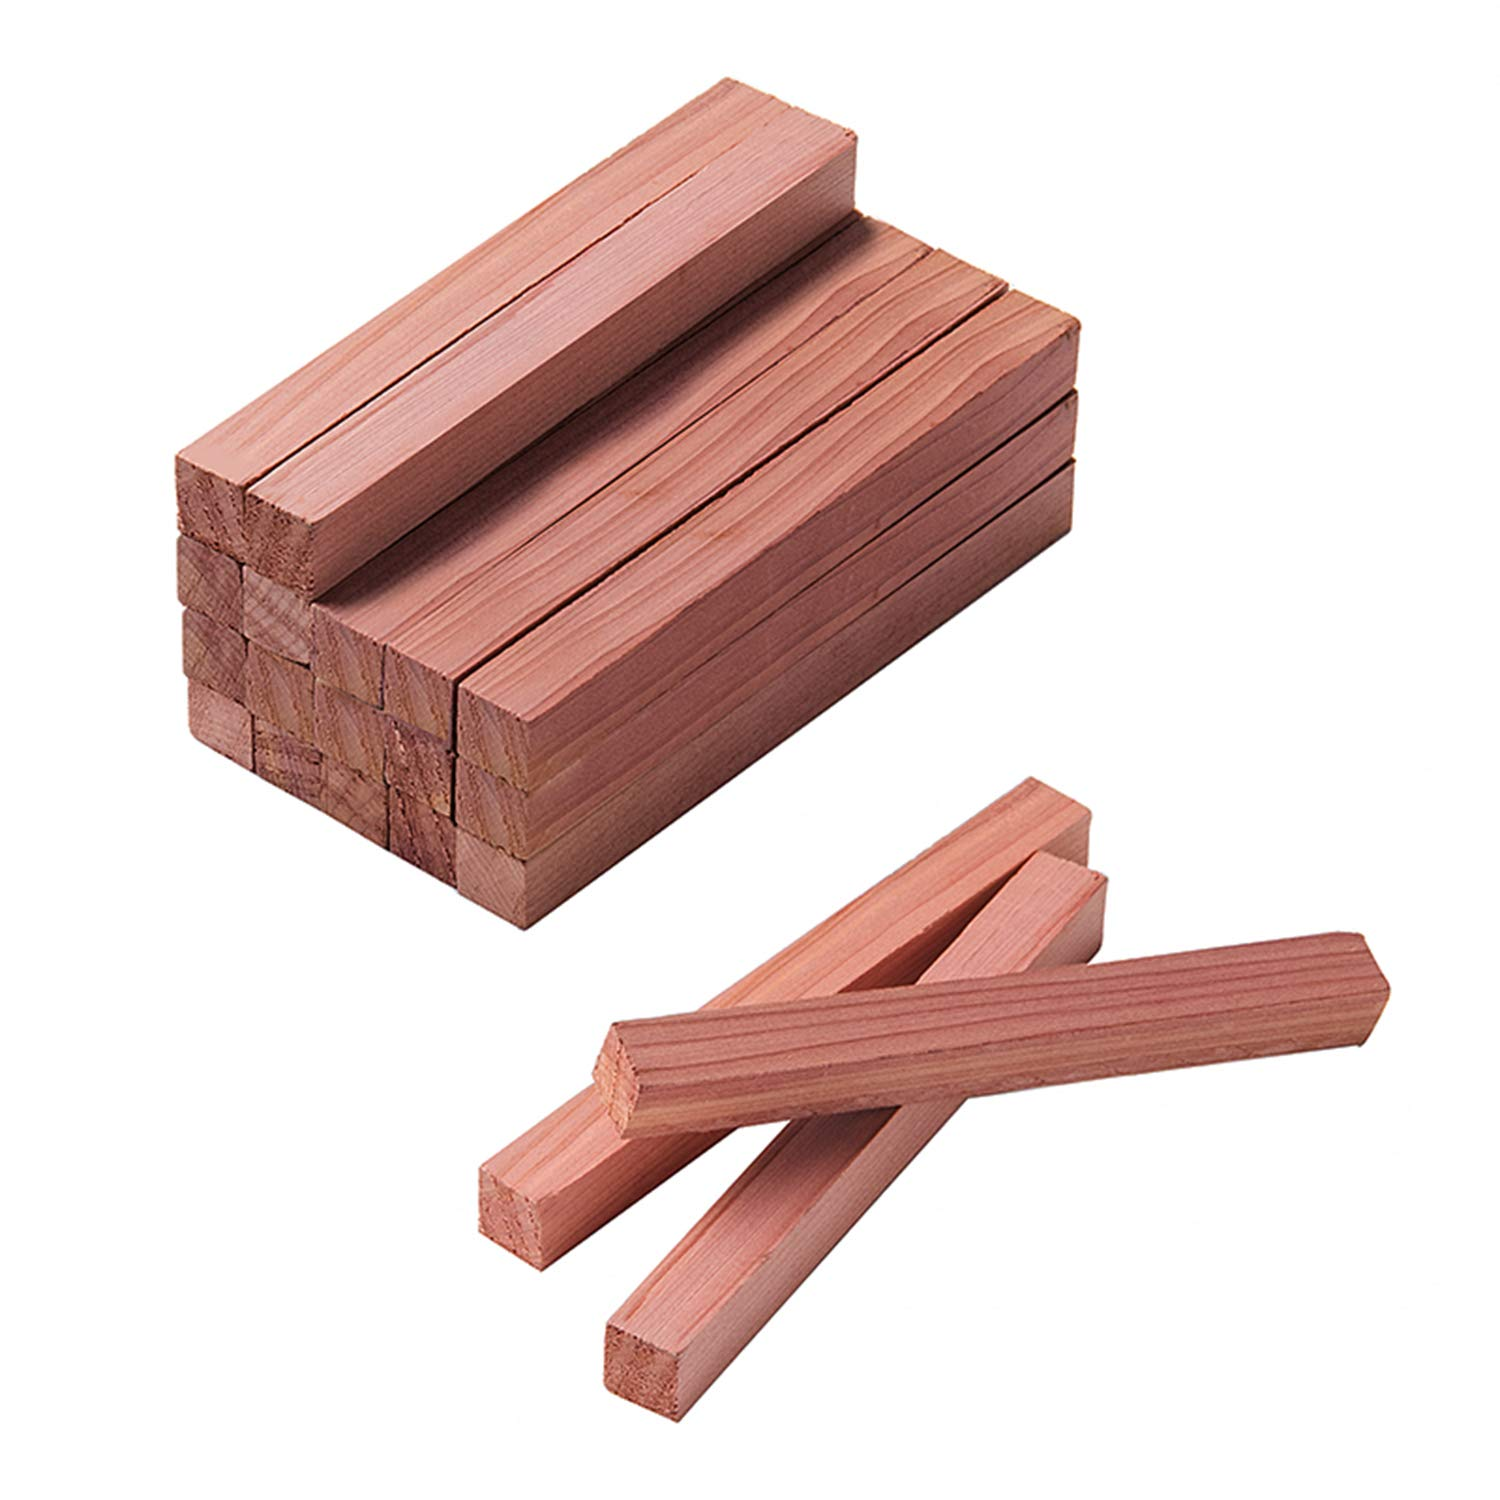 None Branded Red Cedar Wood Strip.Natural Insect Repellent and Deodorization.Wardrobe, Storage Shelves, Bookshelves, Cars can be Used